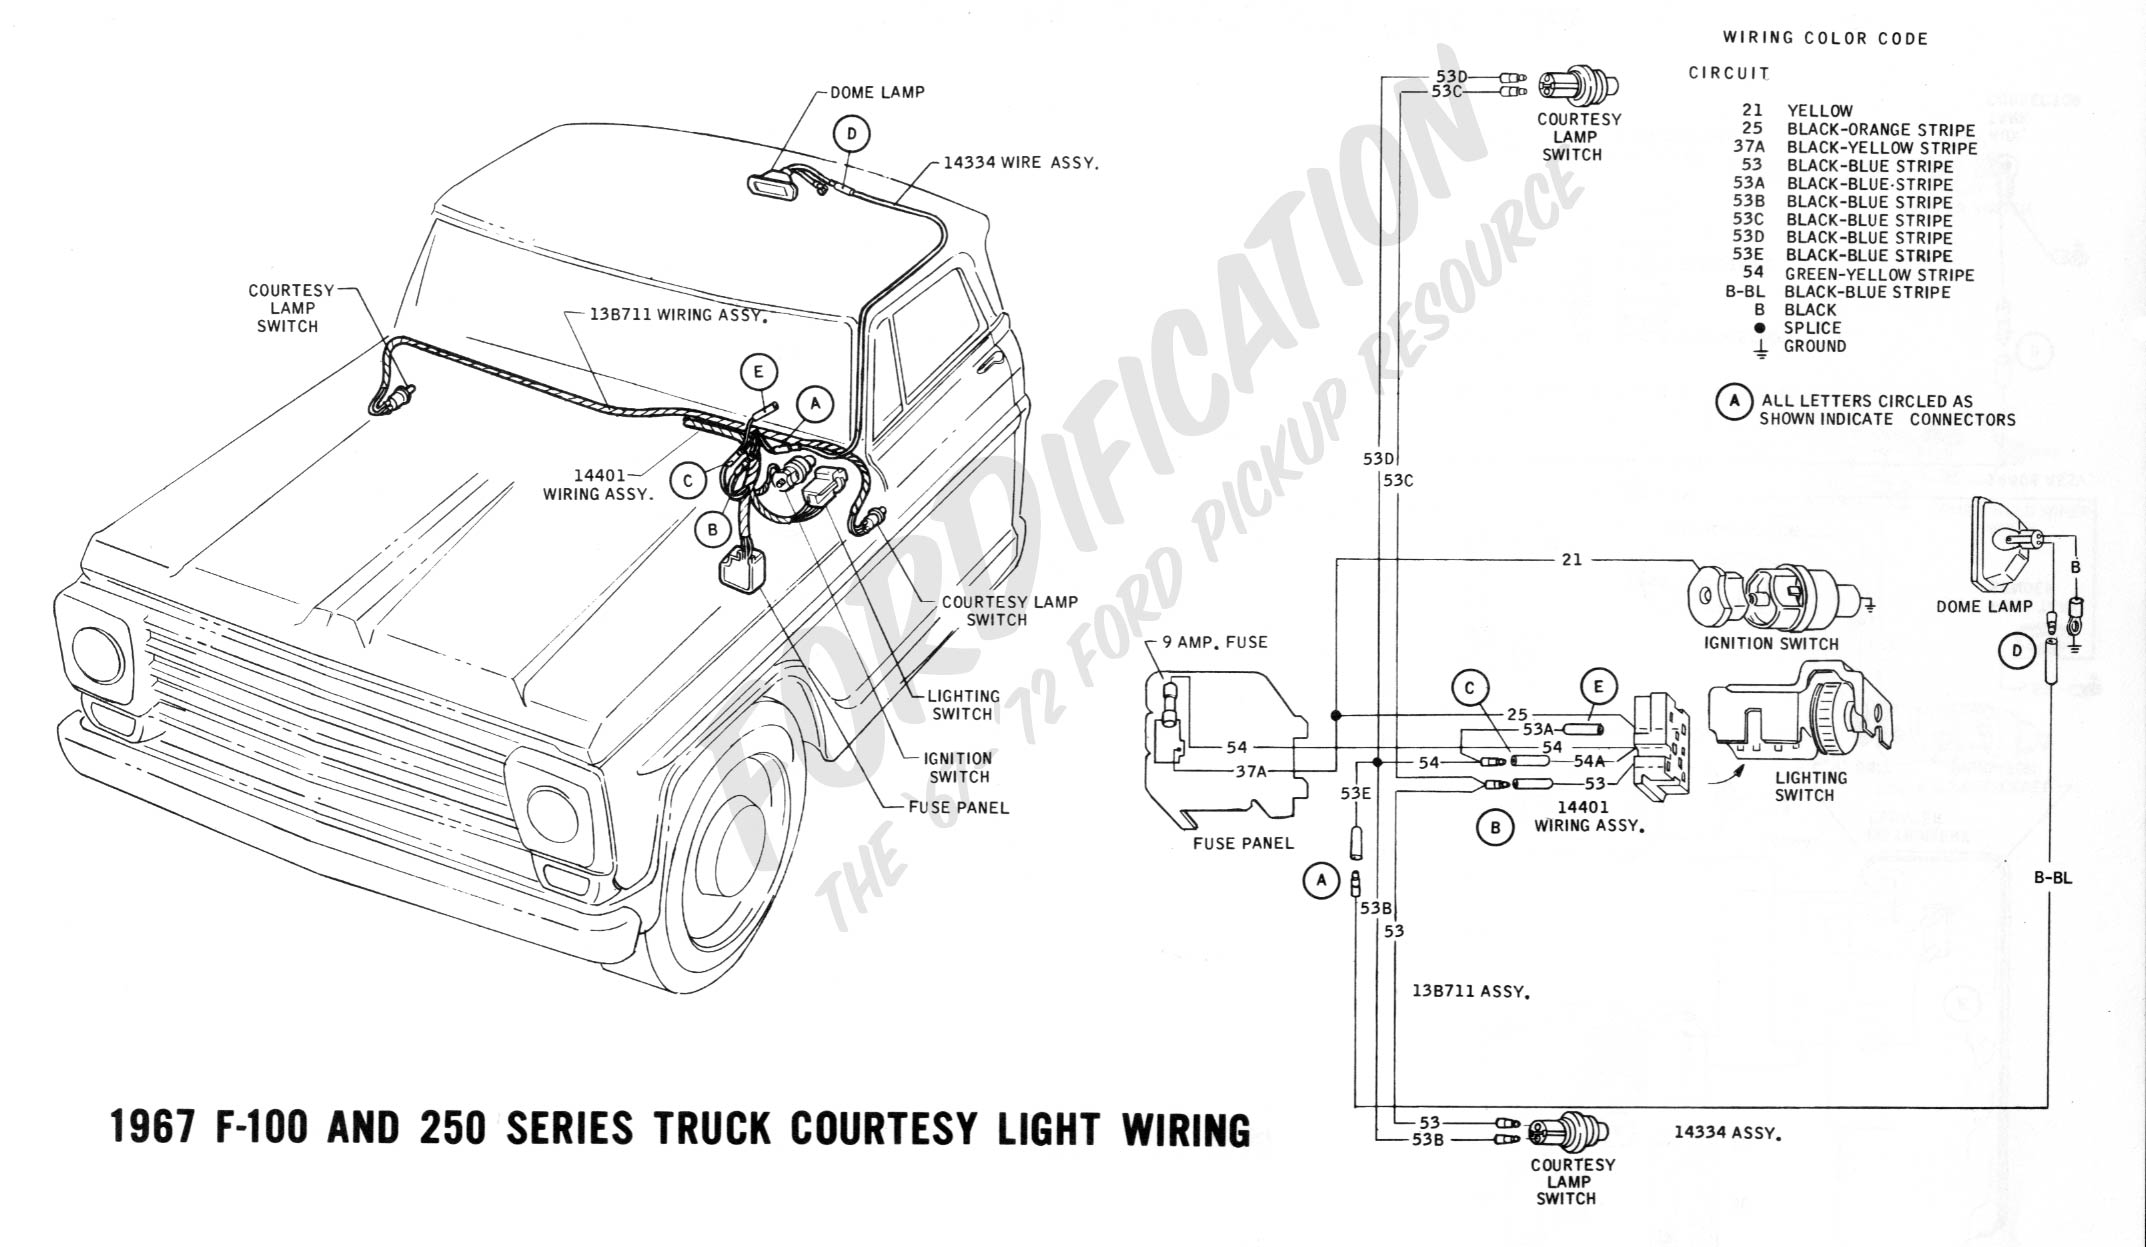 1954 Ford Car Wiring Diagram Online 1947 International Truck Diagrams Headlight Switch Data 1961 F100 For Color